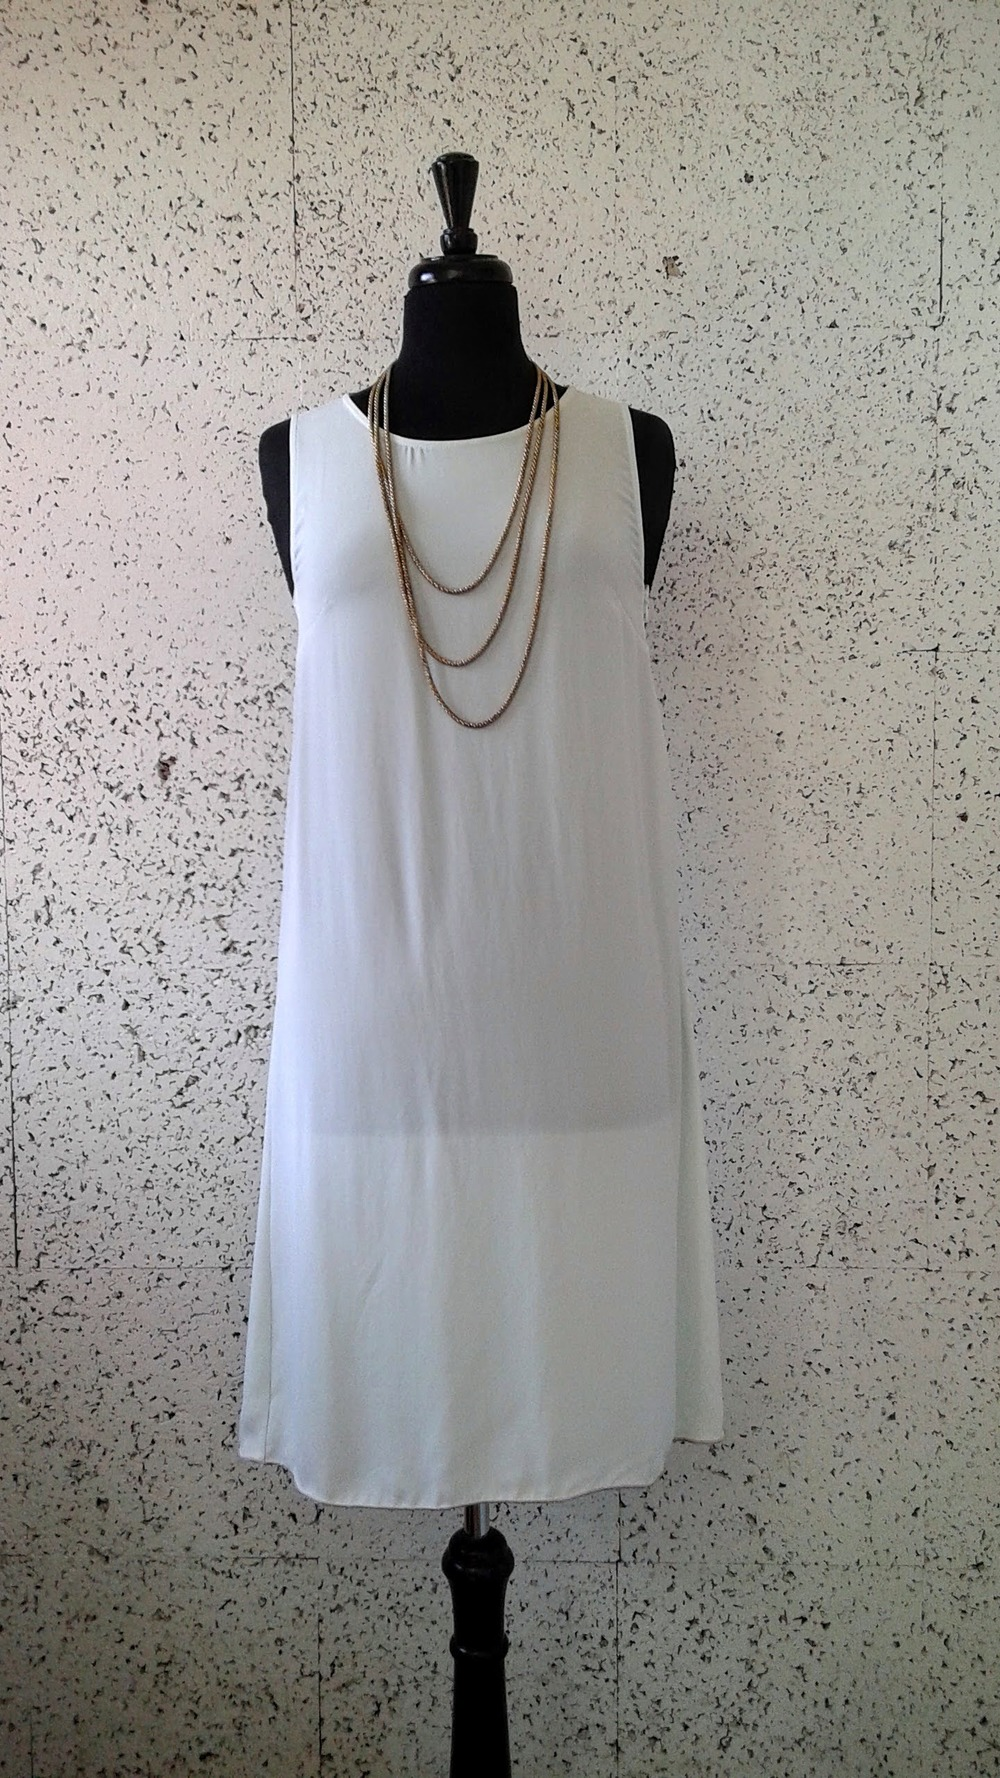 Oak+Fort  dress; Size S, $40